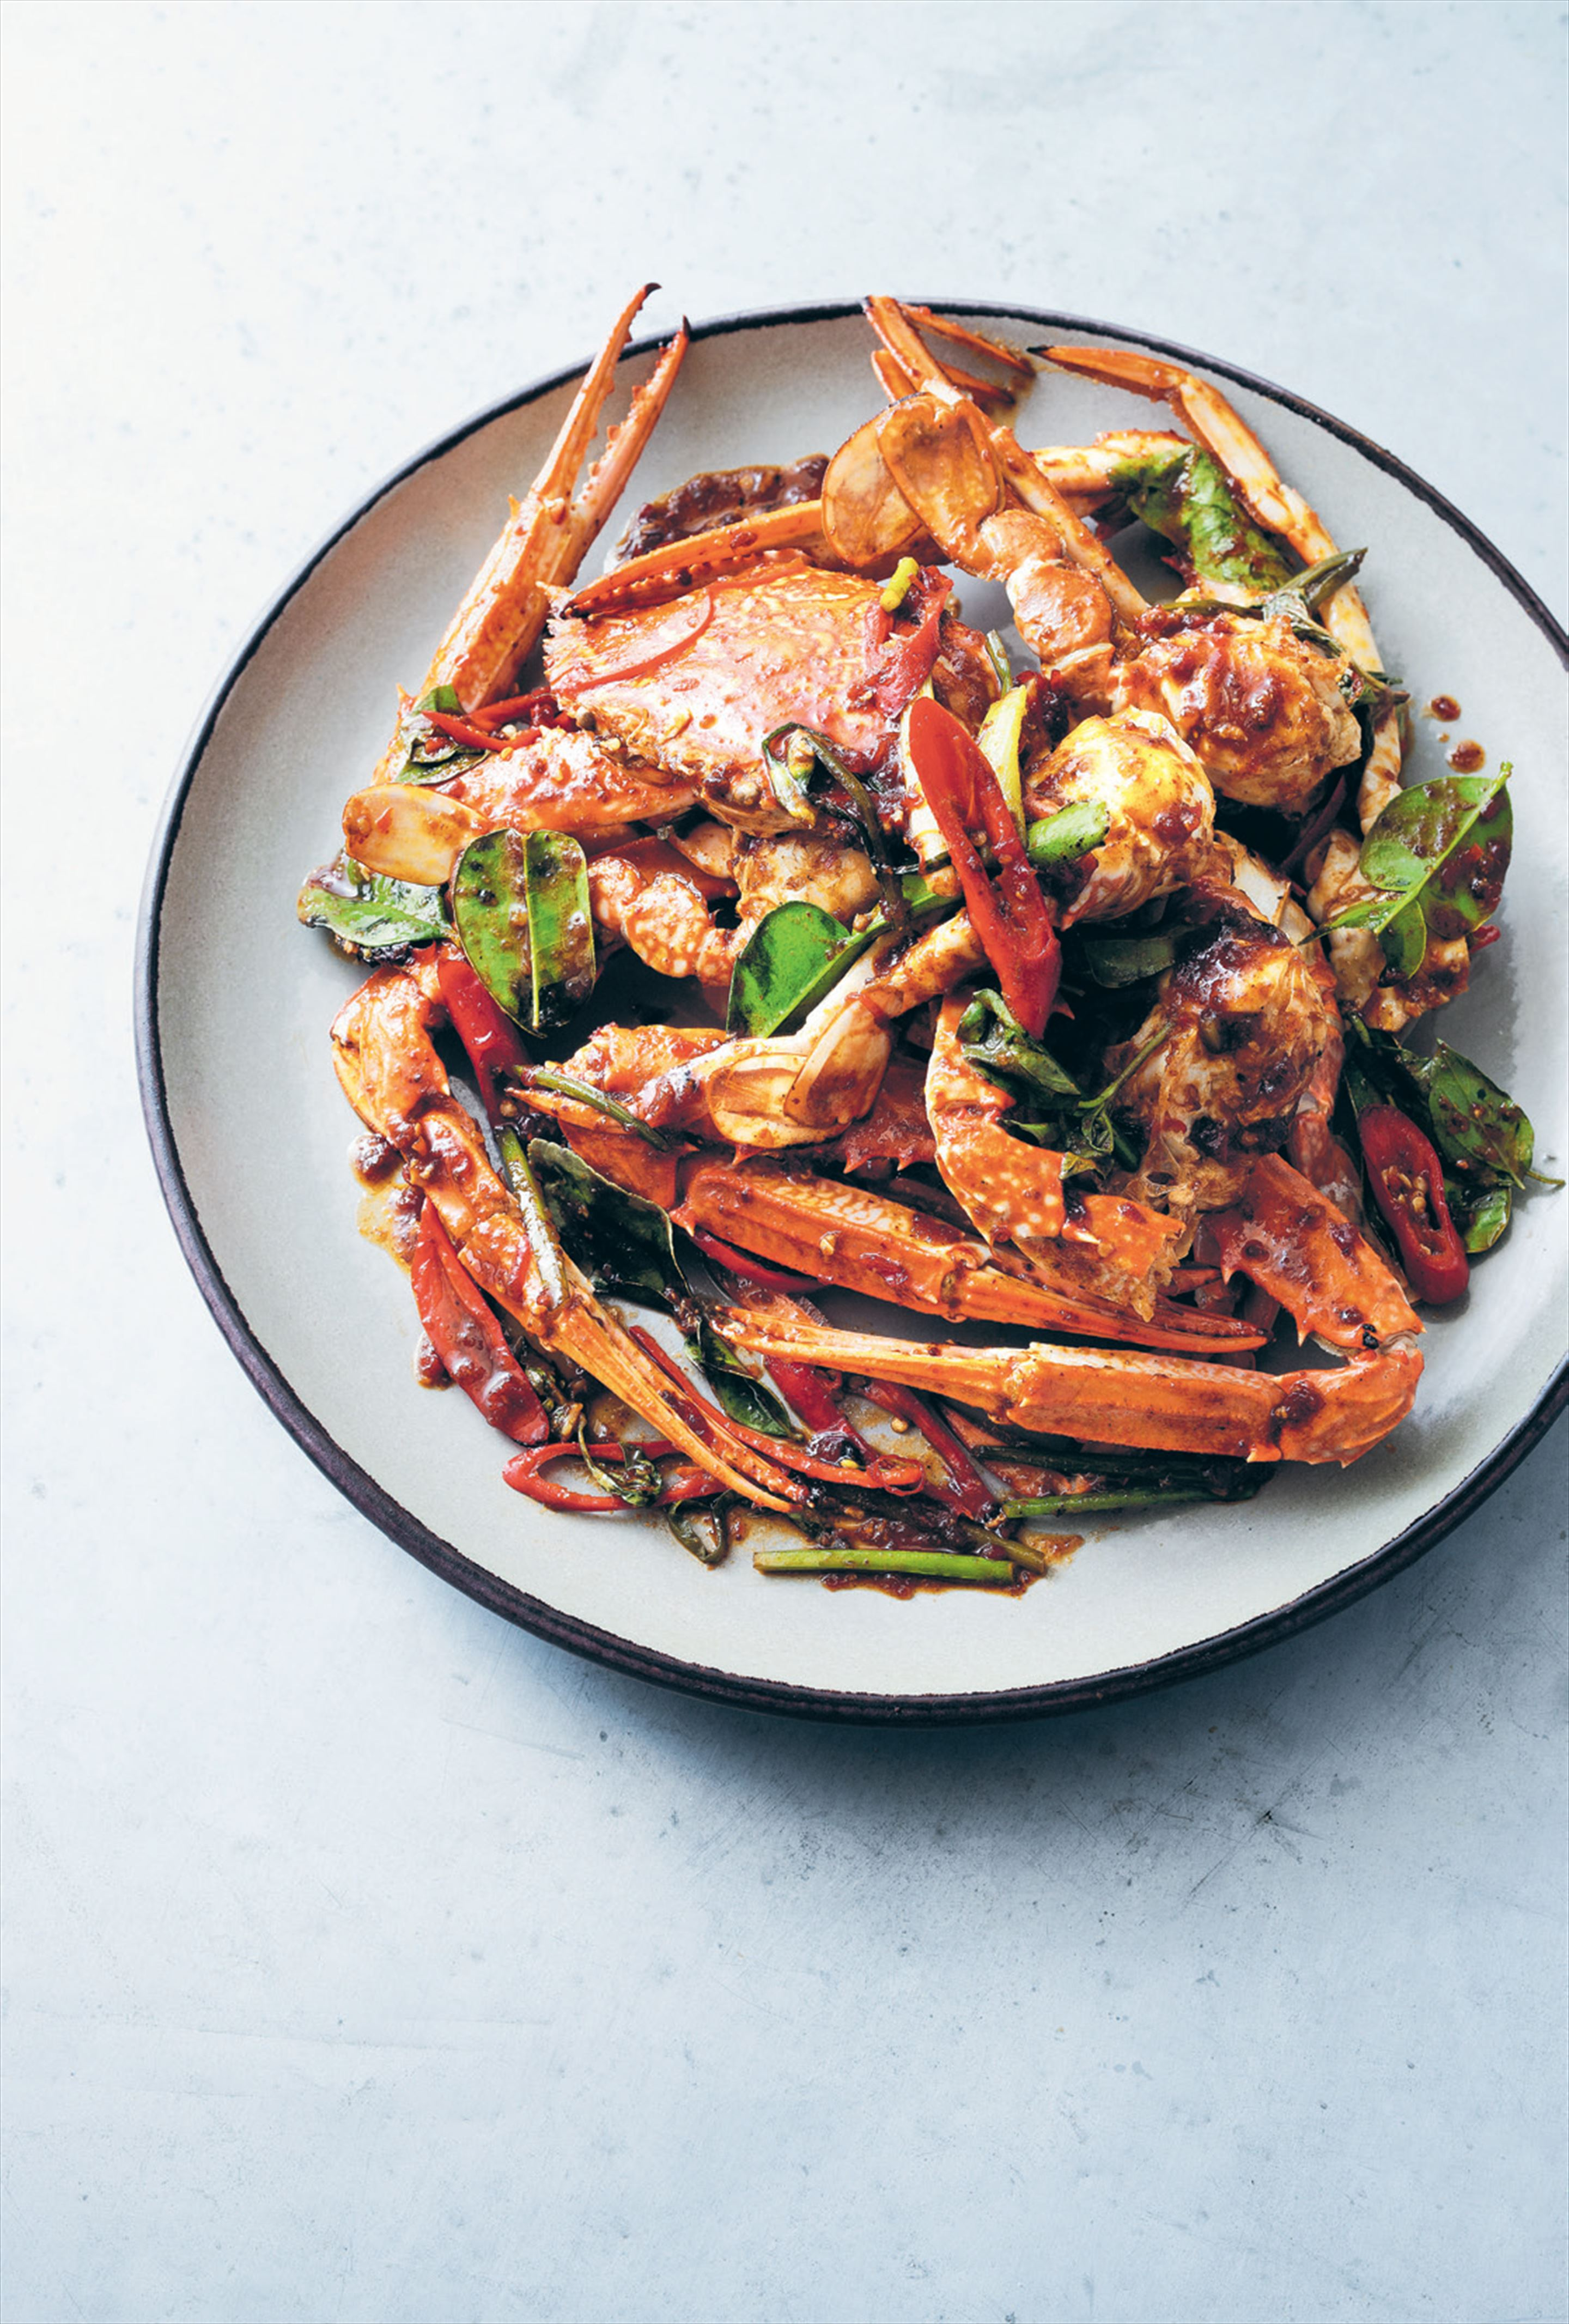 Stir-fried blue swimmer crab with chilli jam